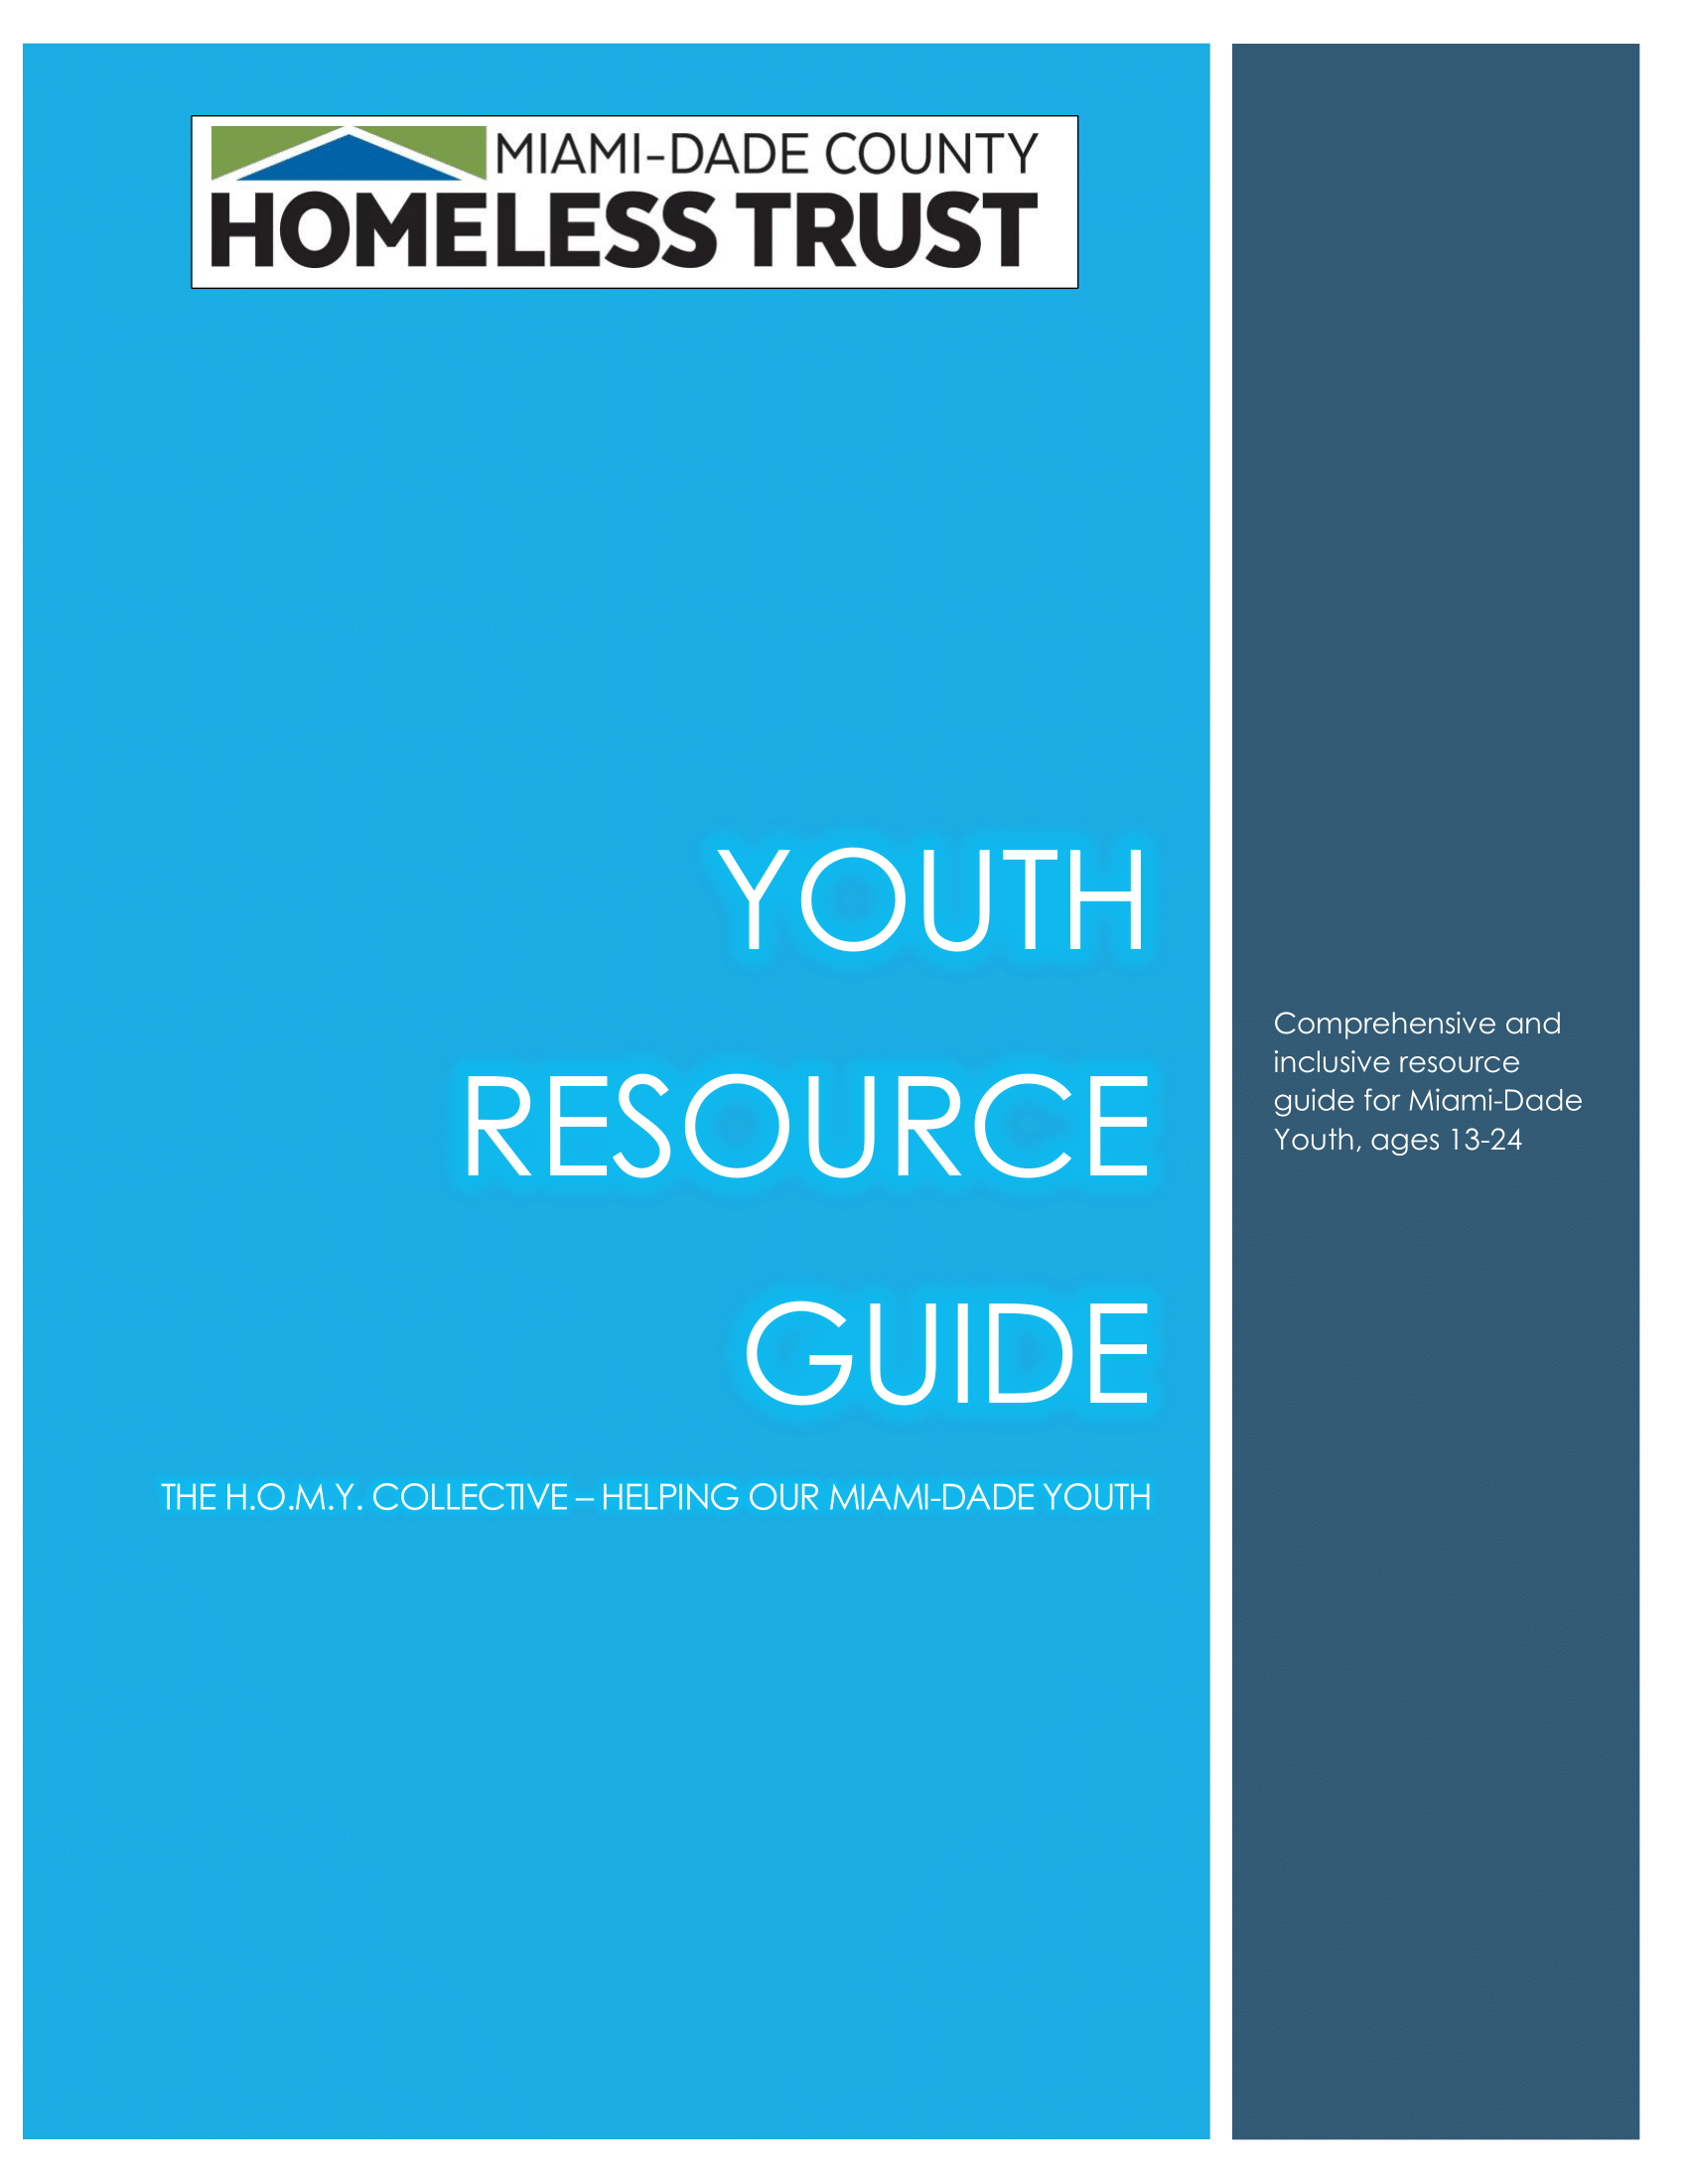 Youth Resource Guide - May 2018-01.png